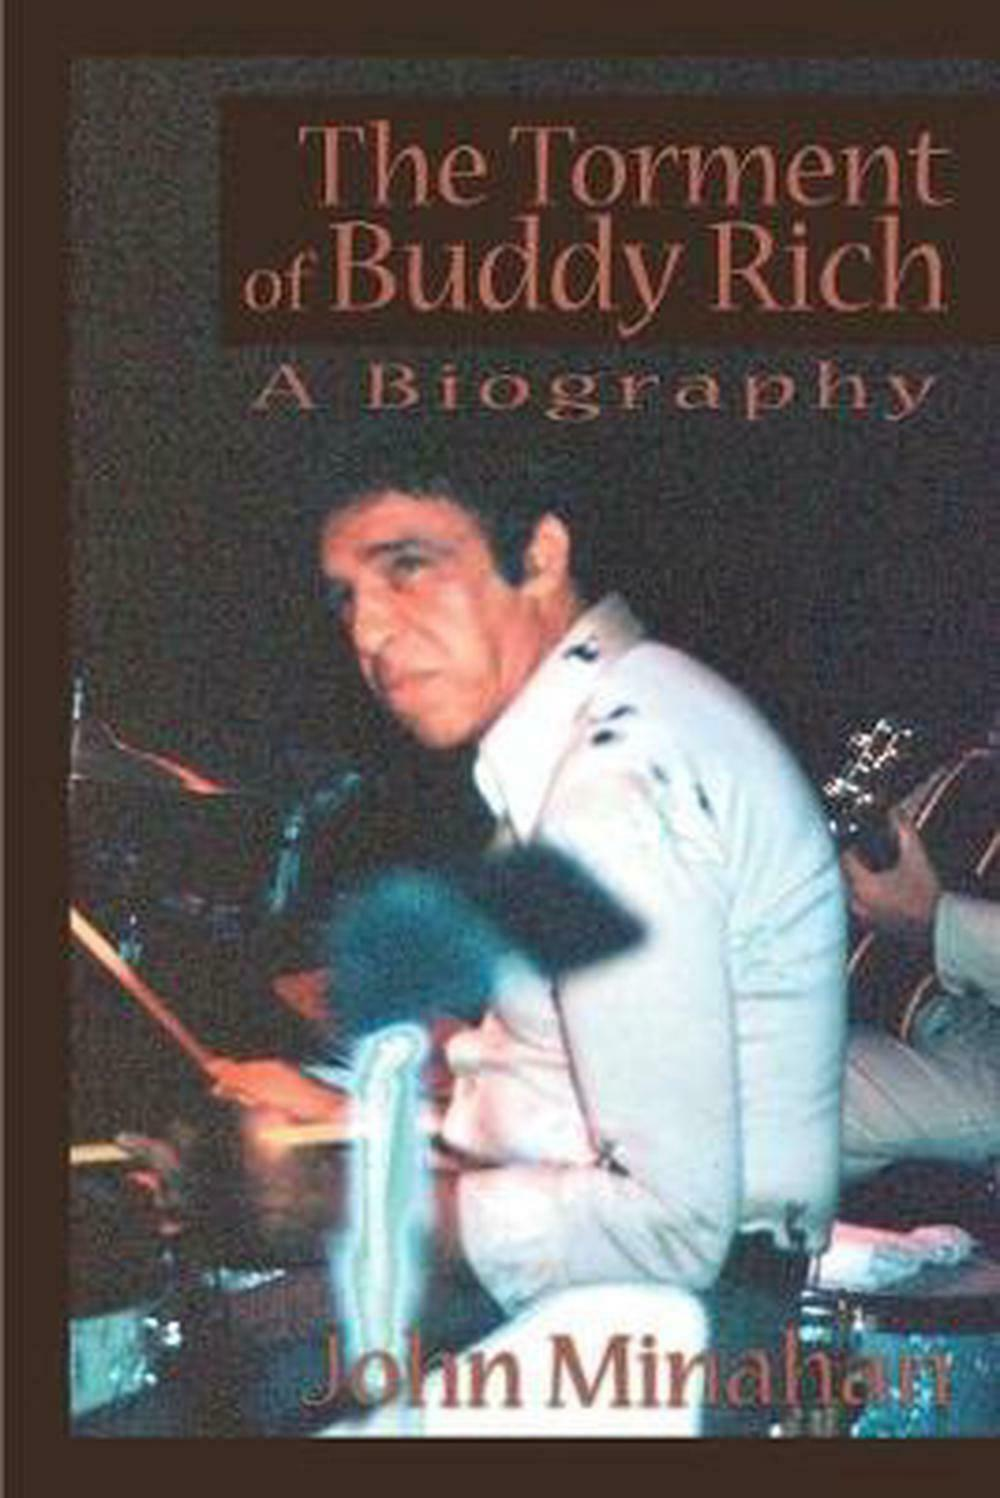 buddy rich essay Daily ielts lessons with simon, ex-ielts examiner ielts writing, reading, speaking and listening ielts topics,  does not dominate the essay.